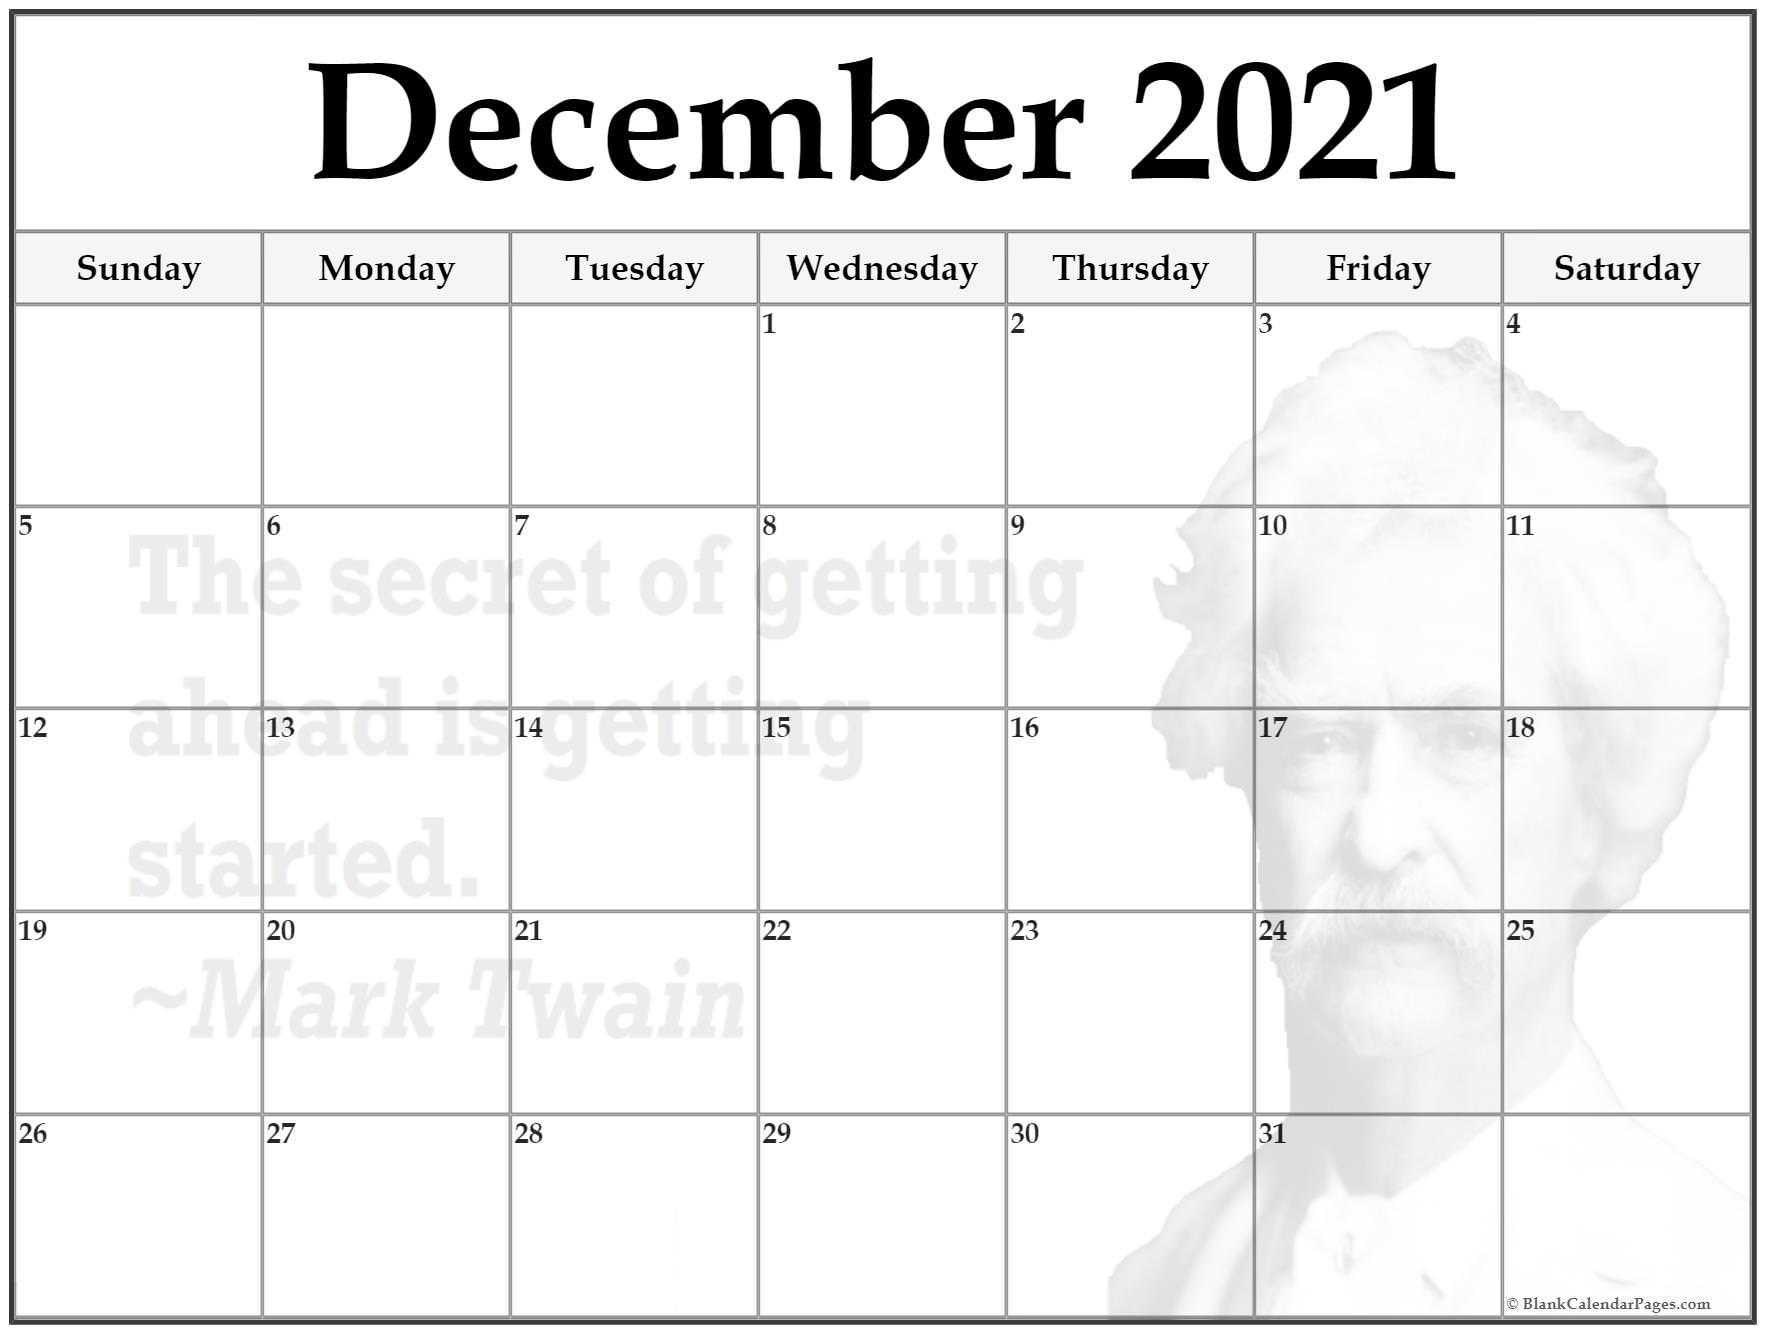 December 2018 with twain quotes. The secret of getting ahead is getting started. ~Mark Twain